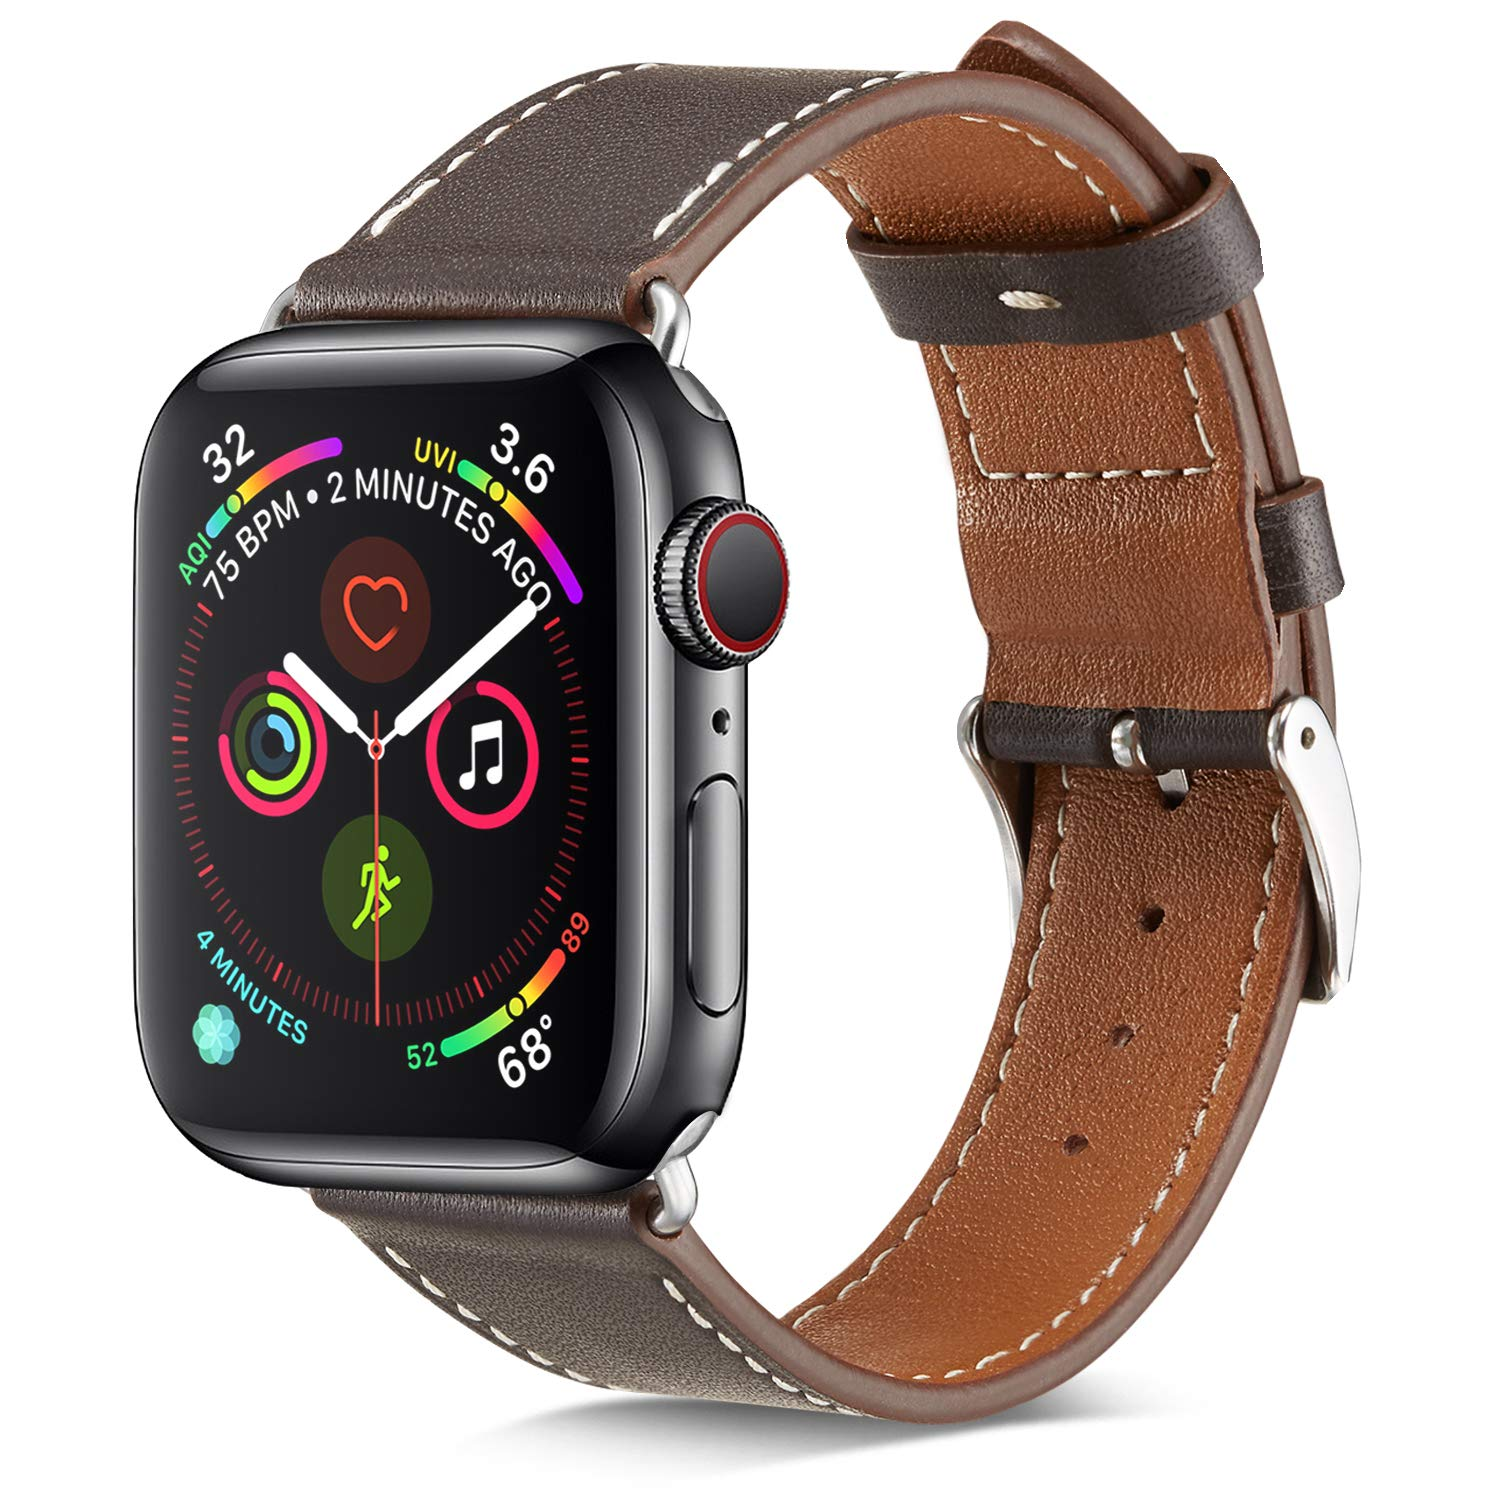 MARGE PLUS Compatible Watch Band, 42mm 44mm Genuine Leather iWatch Strap Replacement Band with Stainless Metal Clasp Compatible Watch Series4 Series 3 Series 2 Series 1 Sport and Edition, Ebony